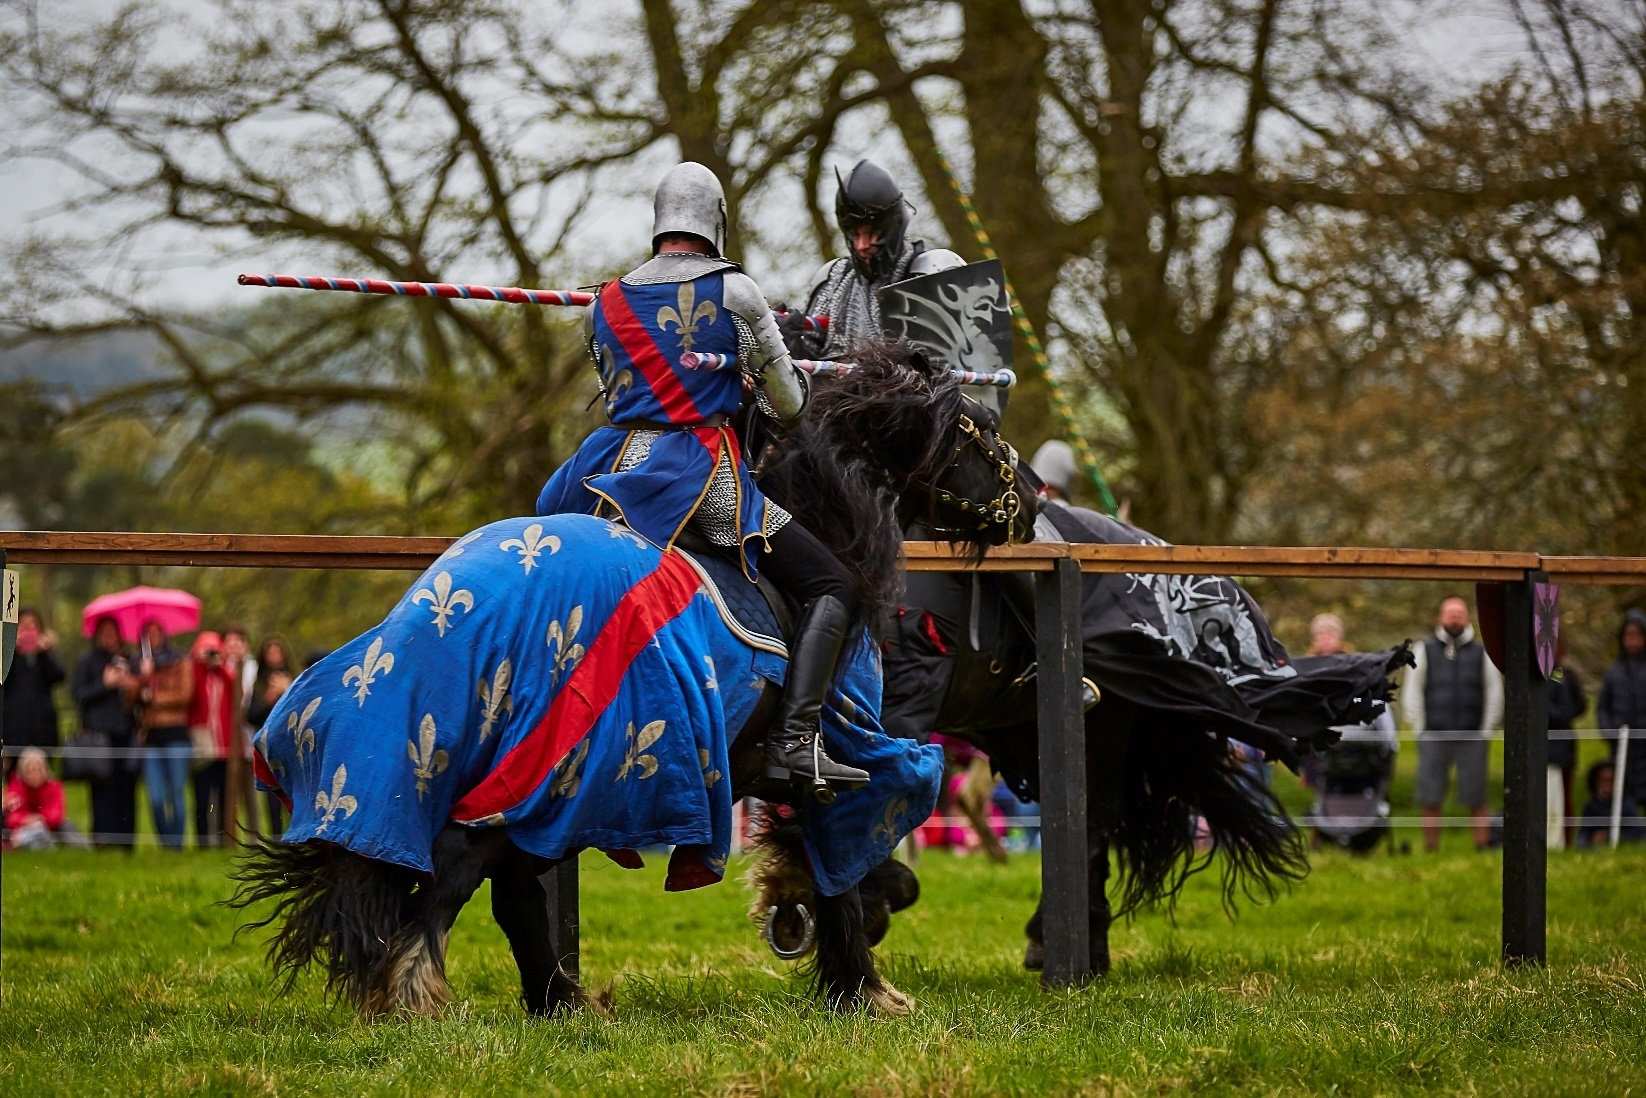 CASTLE: The two winners of the competition will be special guests at Sudeley castle's jousting competition, being held this May. Pic: John Ord